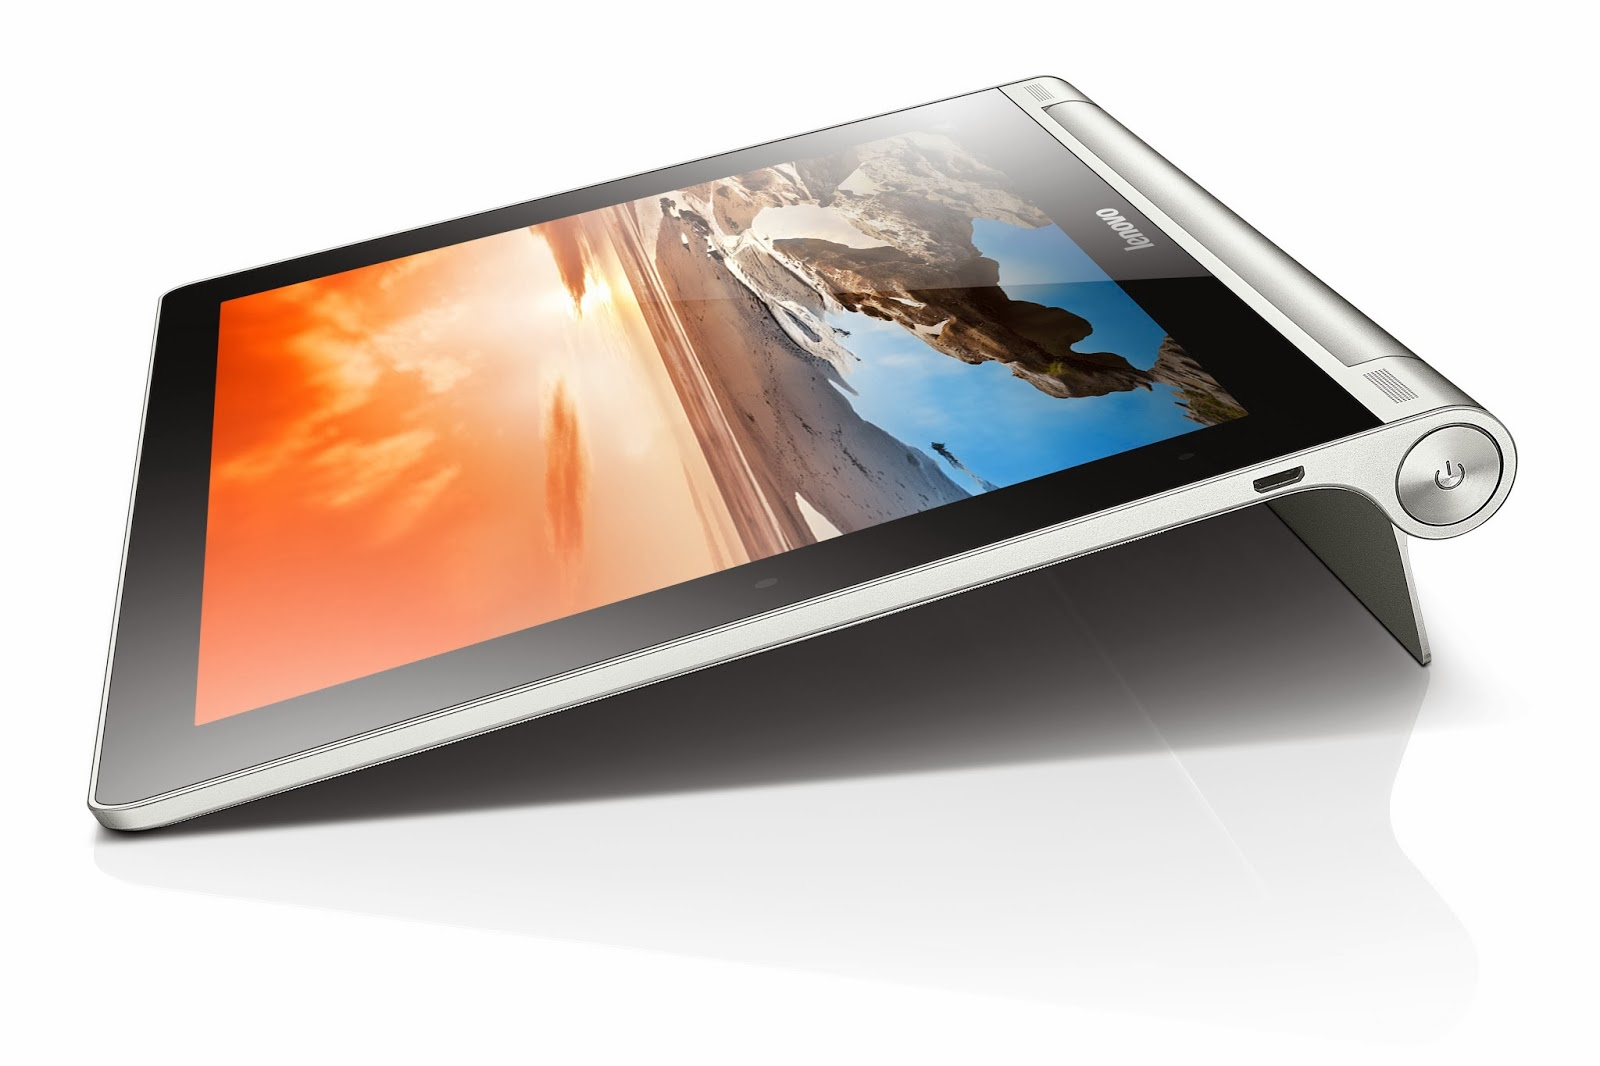 Lenovo Yoga 10 HD+ - tablet z 10,1 ekranem 1080p, Snapdragon 400 i Android 4.3